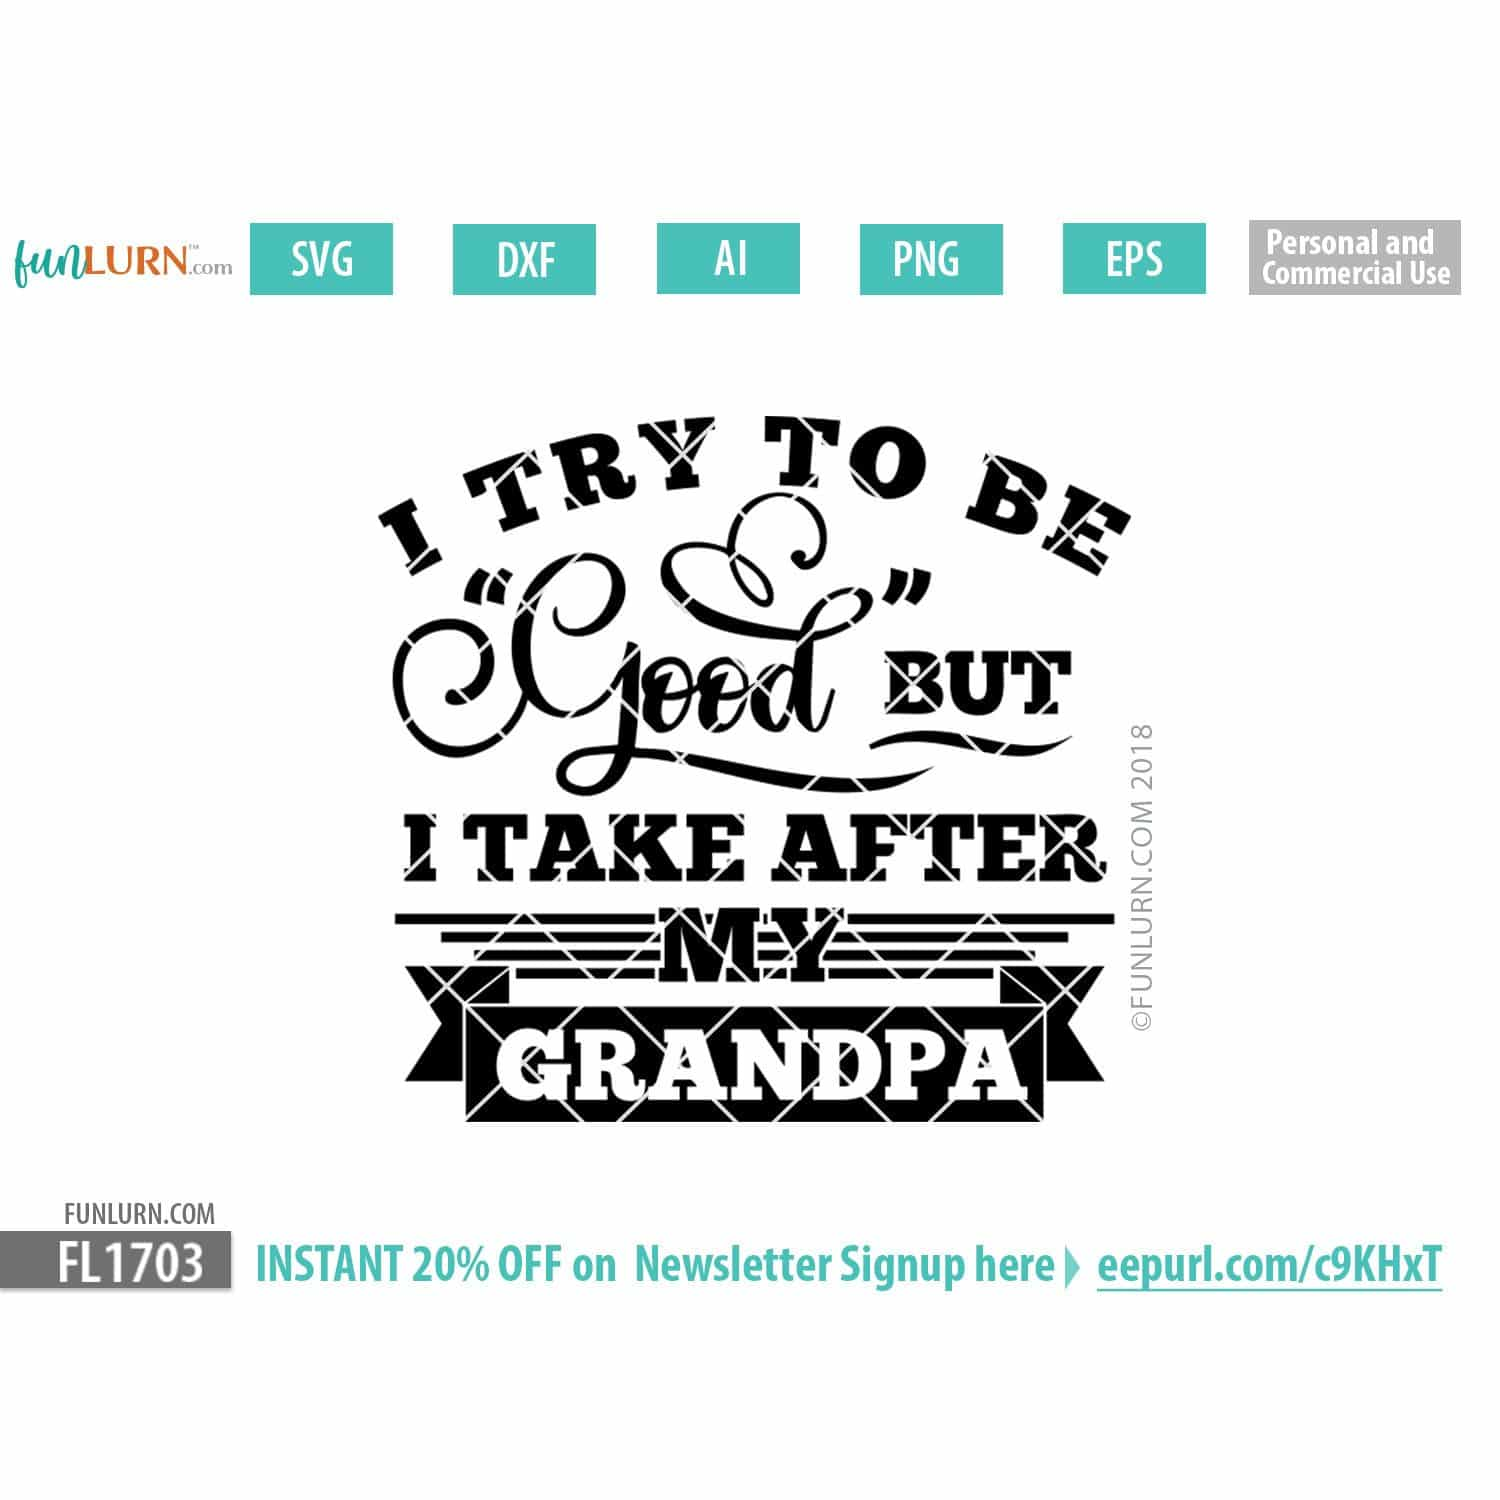 Free Here are some father's day gift ideas for grandpa, including engraved and personalized gifts to useful everyday items from amazon that you can shop to help you find the best gift for your grandpa this father's day, take a look at our list that offers a mix of totally customizable gifts and small presents. I Try To Be Good But I Take After My Grandpa Svg Funlurn SVG, PNG, EPS, DXF File